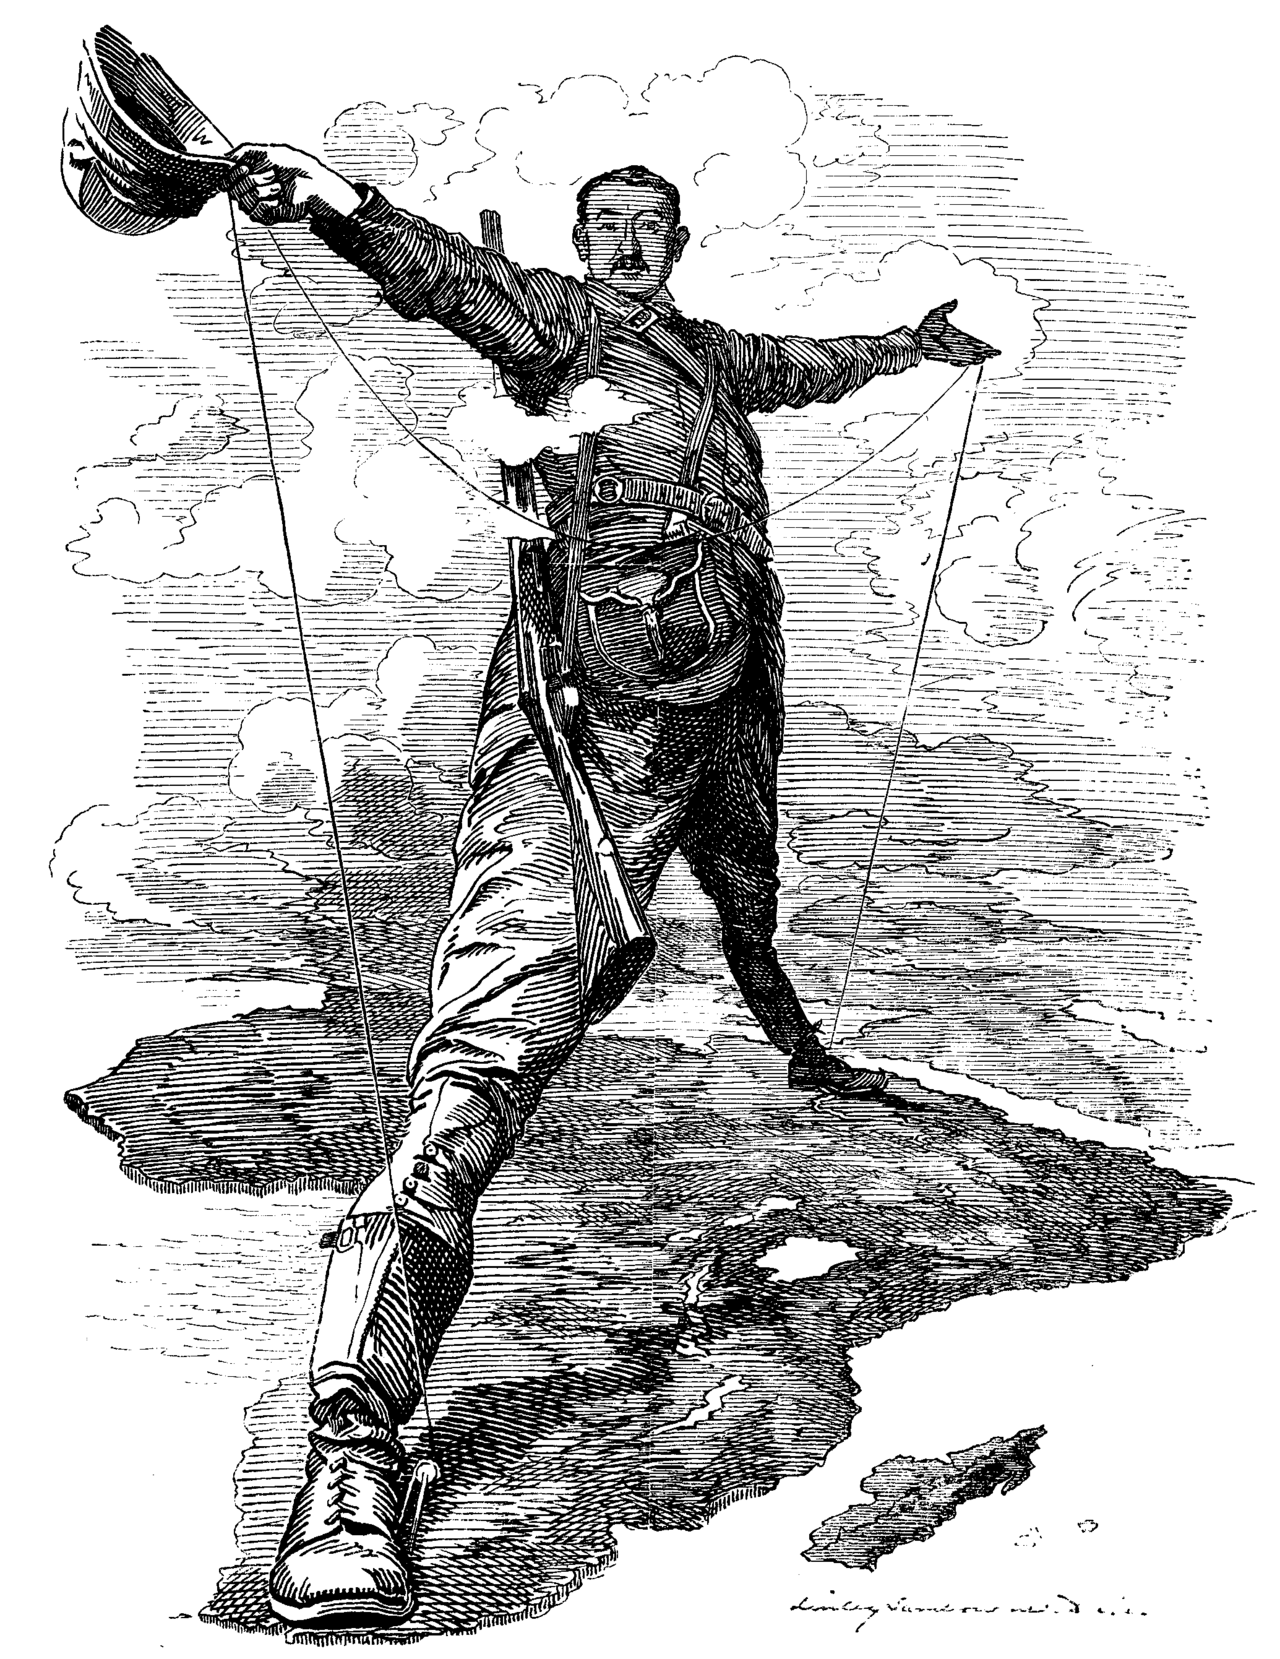 Imperialist Cecil Rhodes planned a railway and telegraph line to connect Africa. Picture credit: Wikimedia Commons